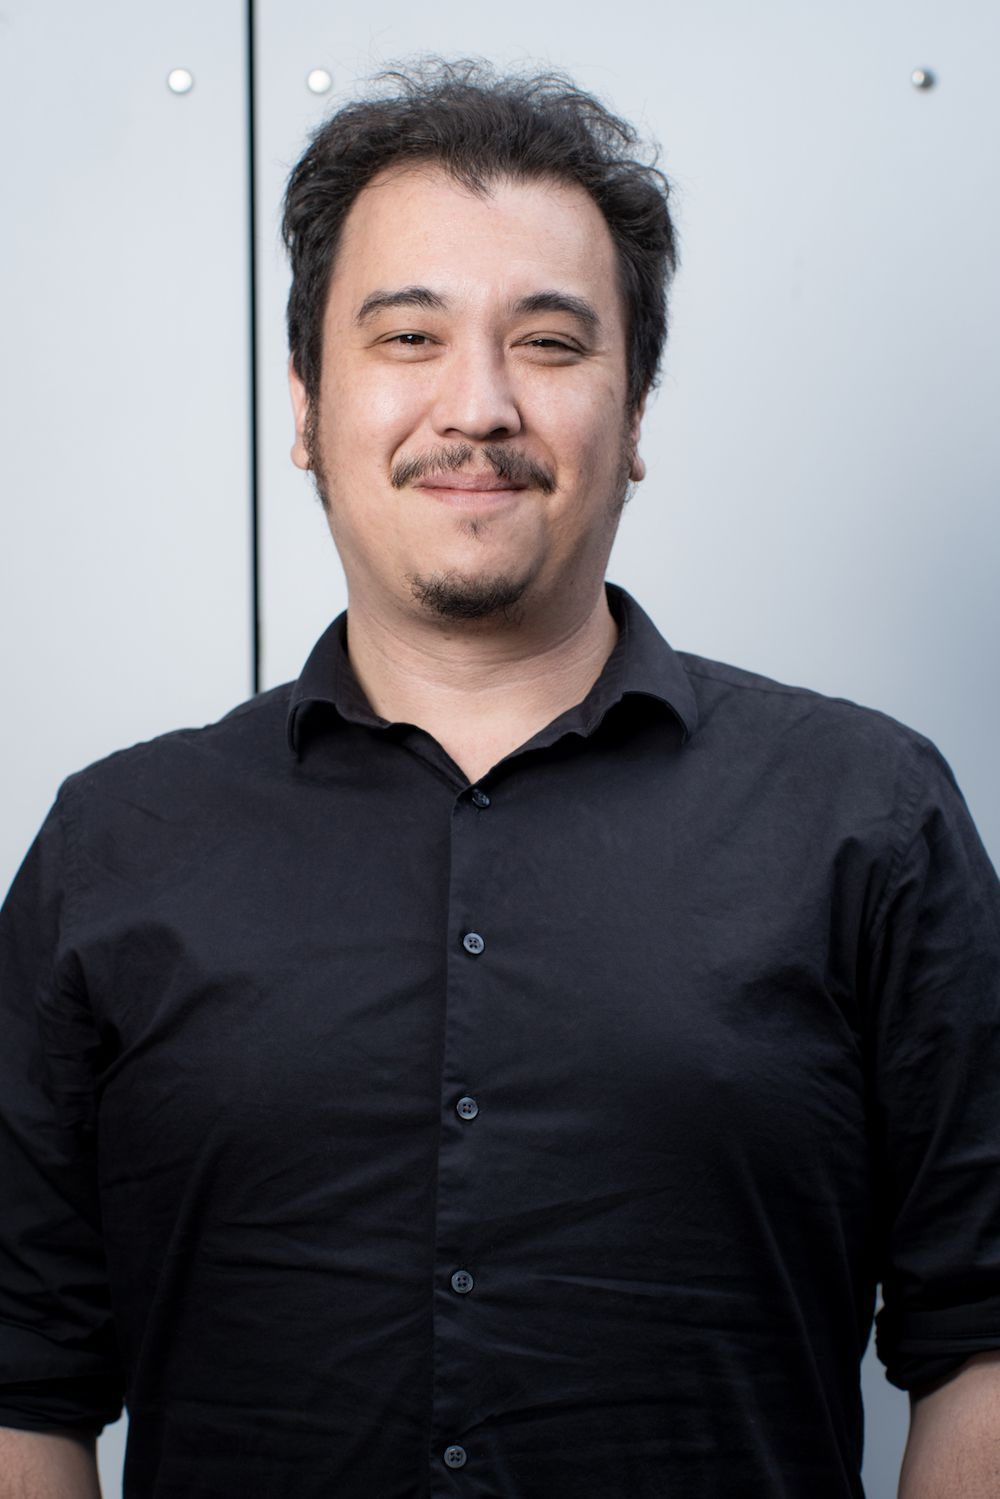 Joe Ziegler, Game Director at Riot Games. Photo credits to Riot Games